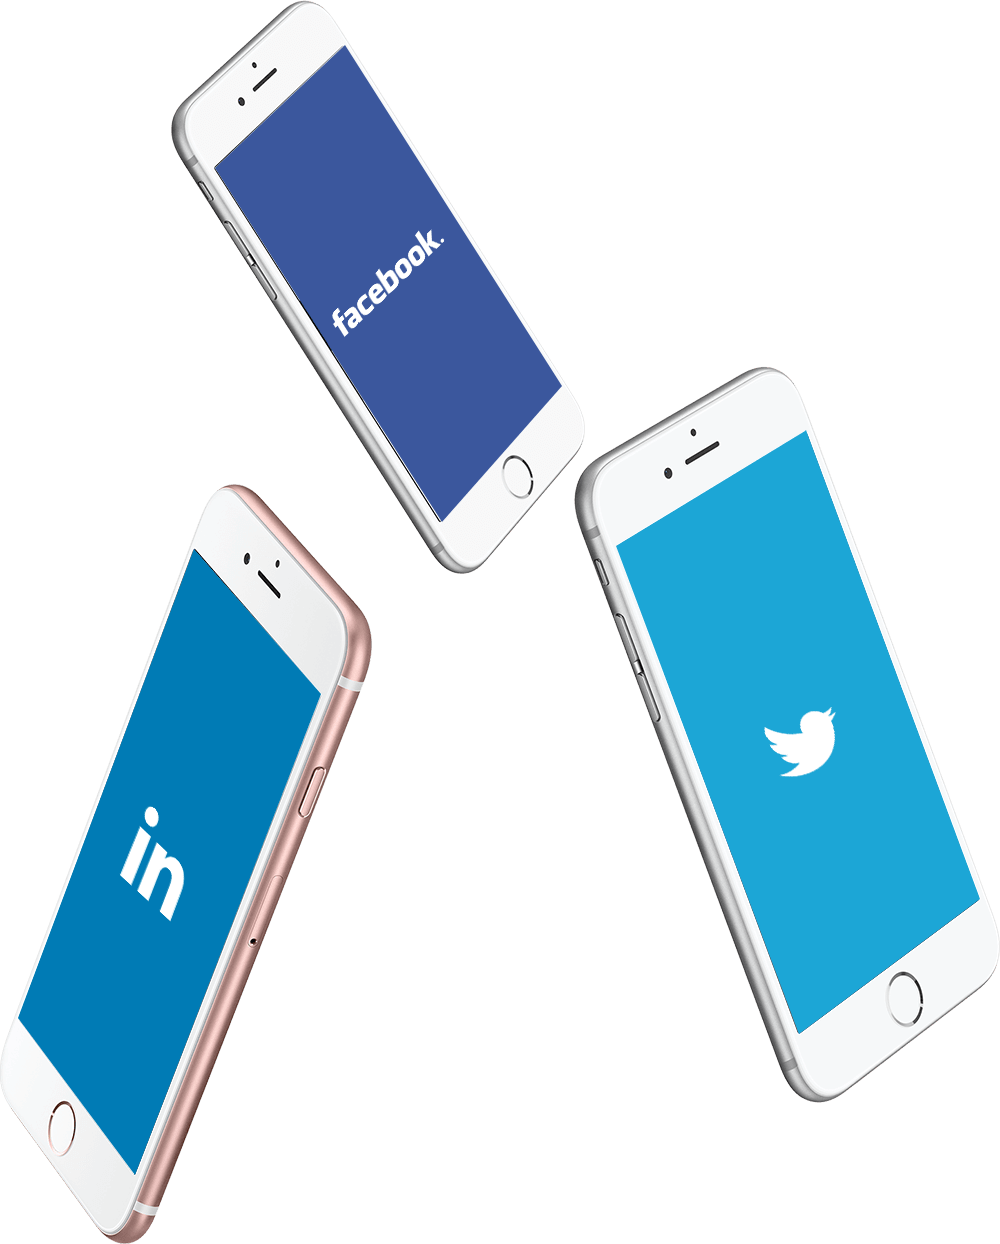 Twitter, Facebook and LinkedIn social media platforms on mobile phones